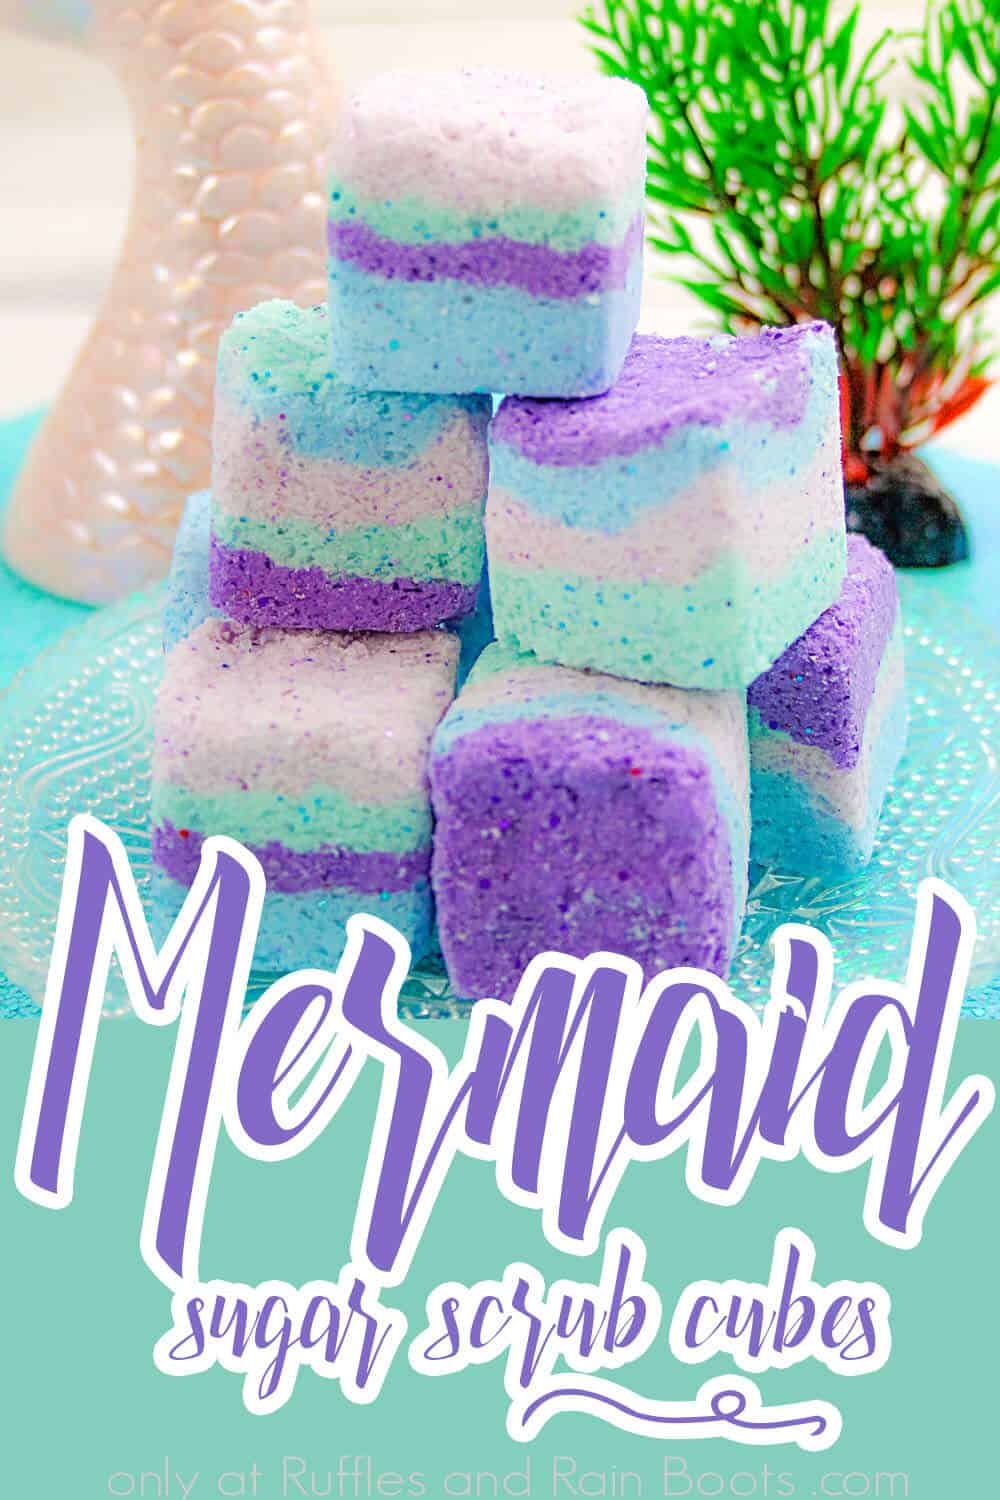 side view of easy recipe to make mermaid bath bombs with text which reads Mermaid Sugar Scrub Cubes